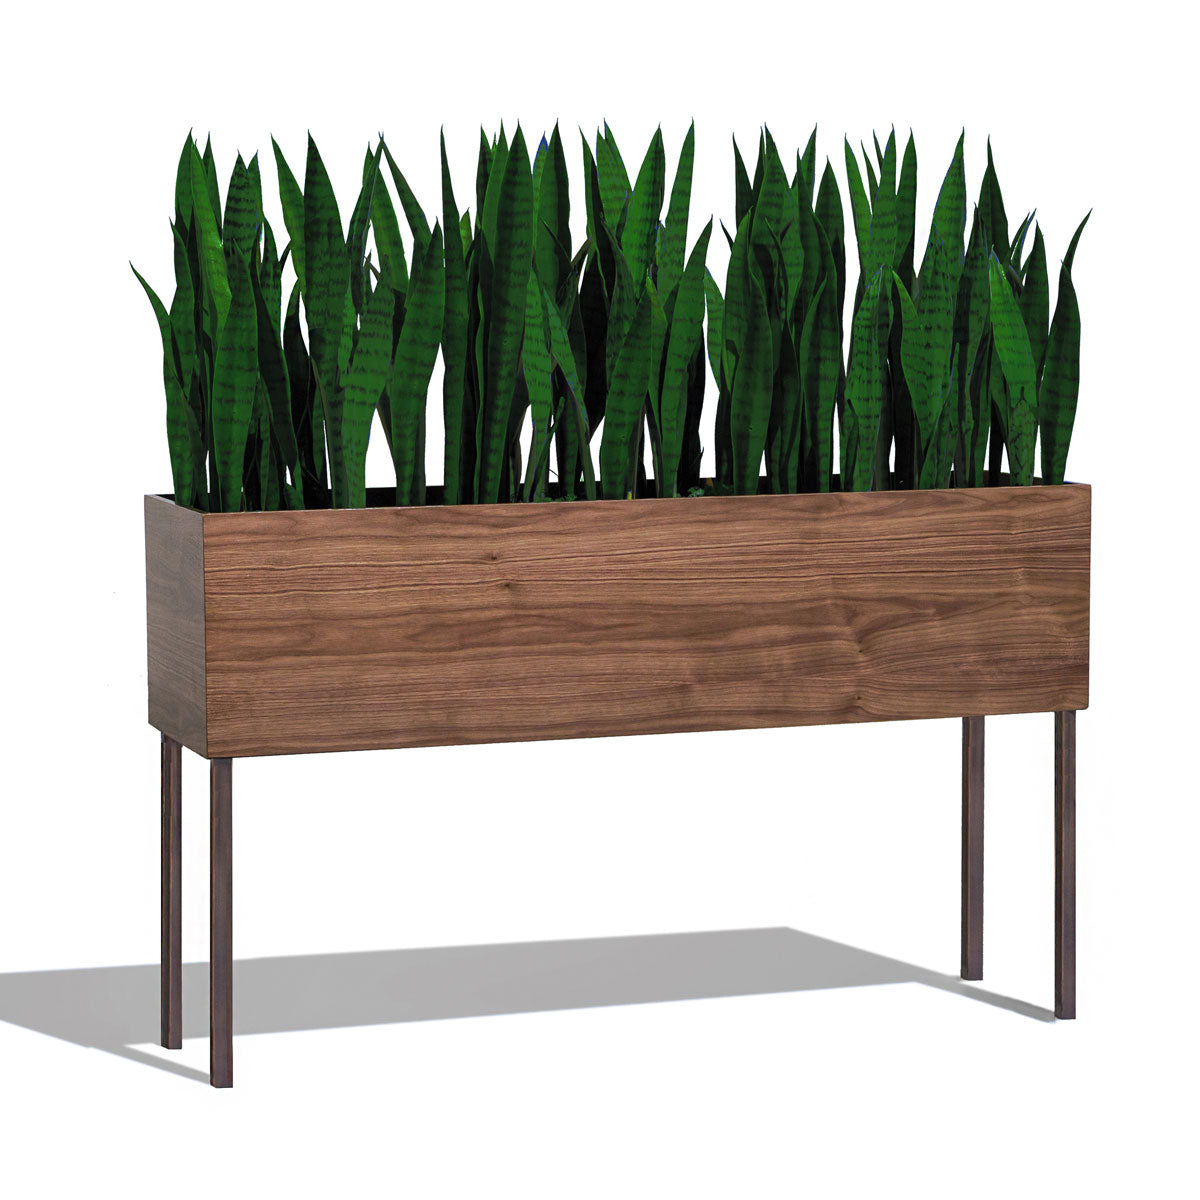 Sansevieria in Rectangle Planter w/ Legs